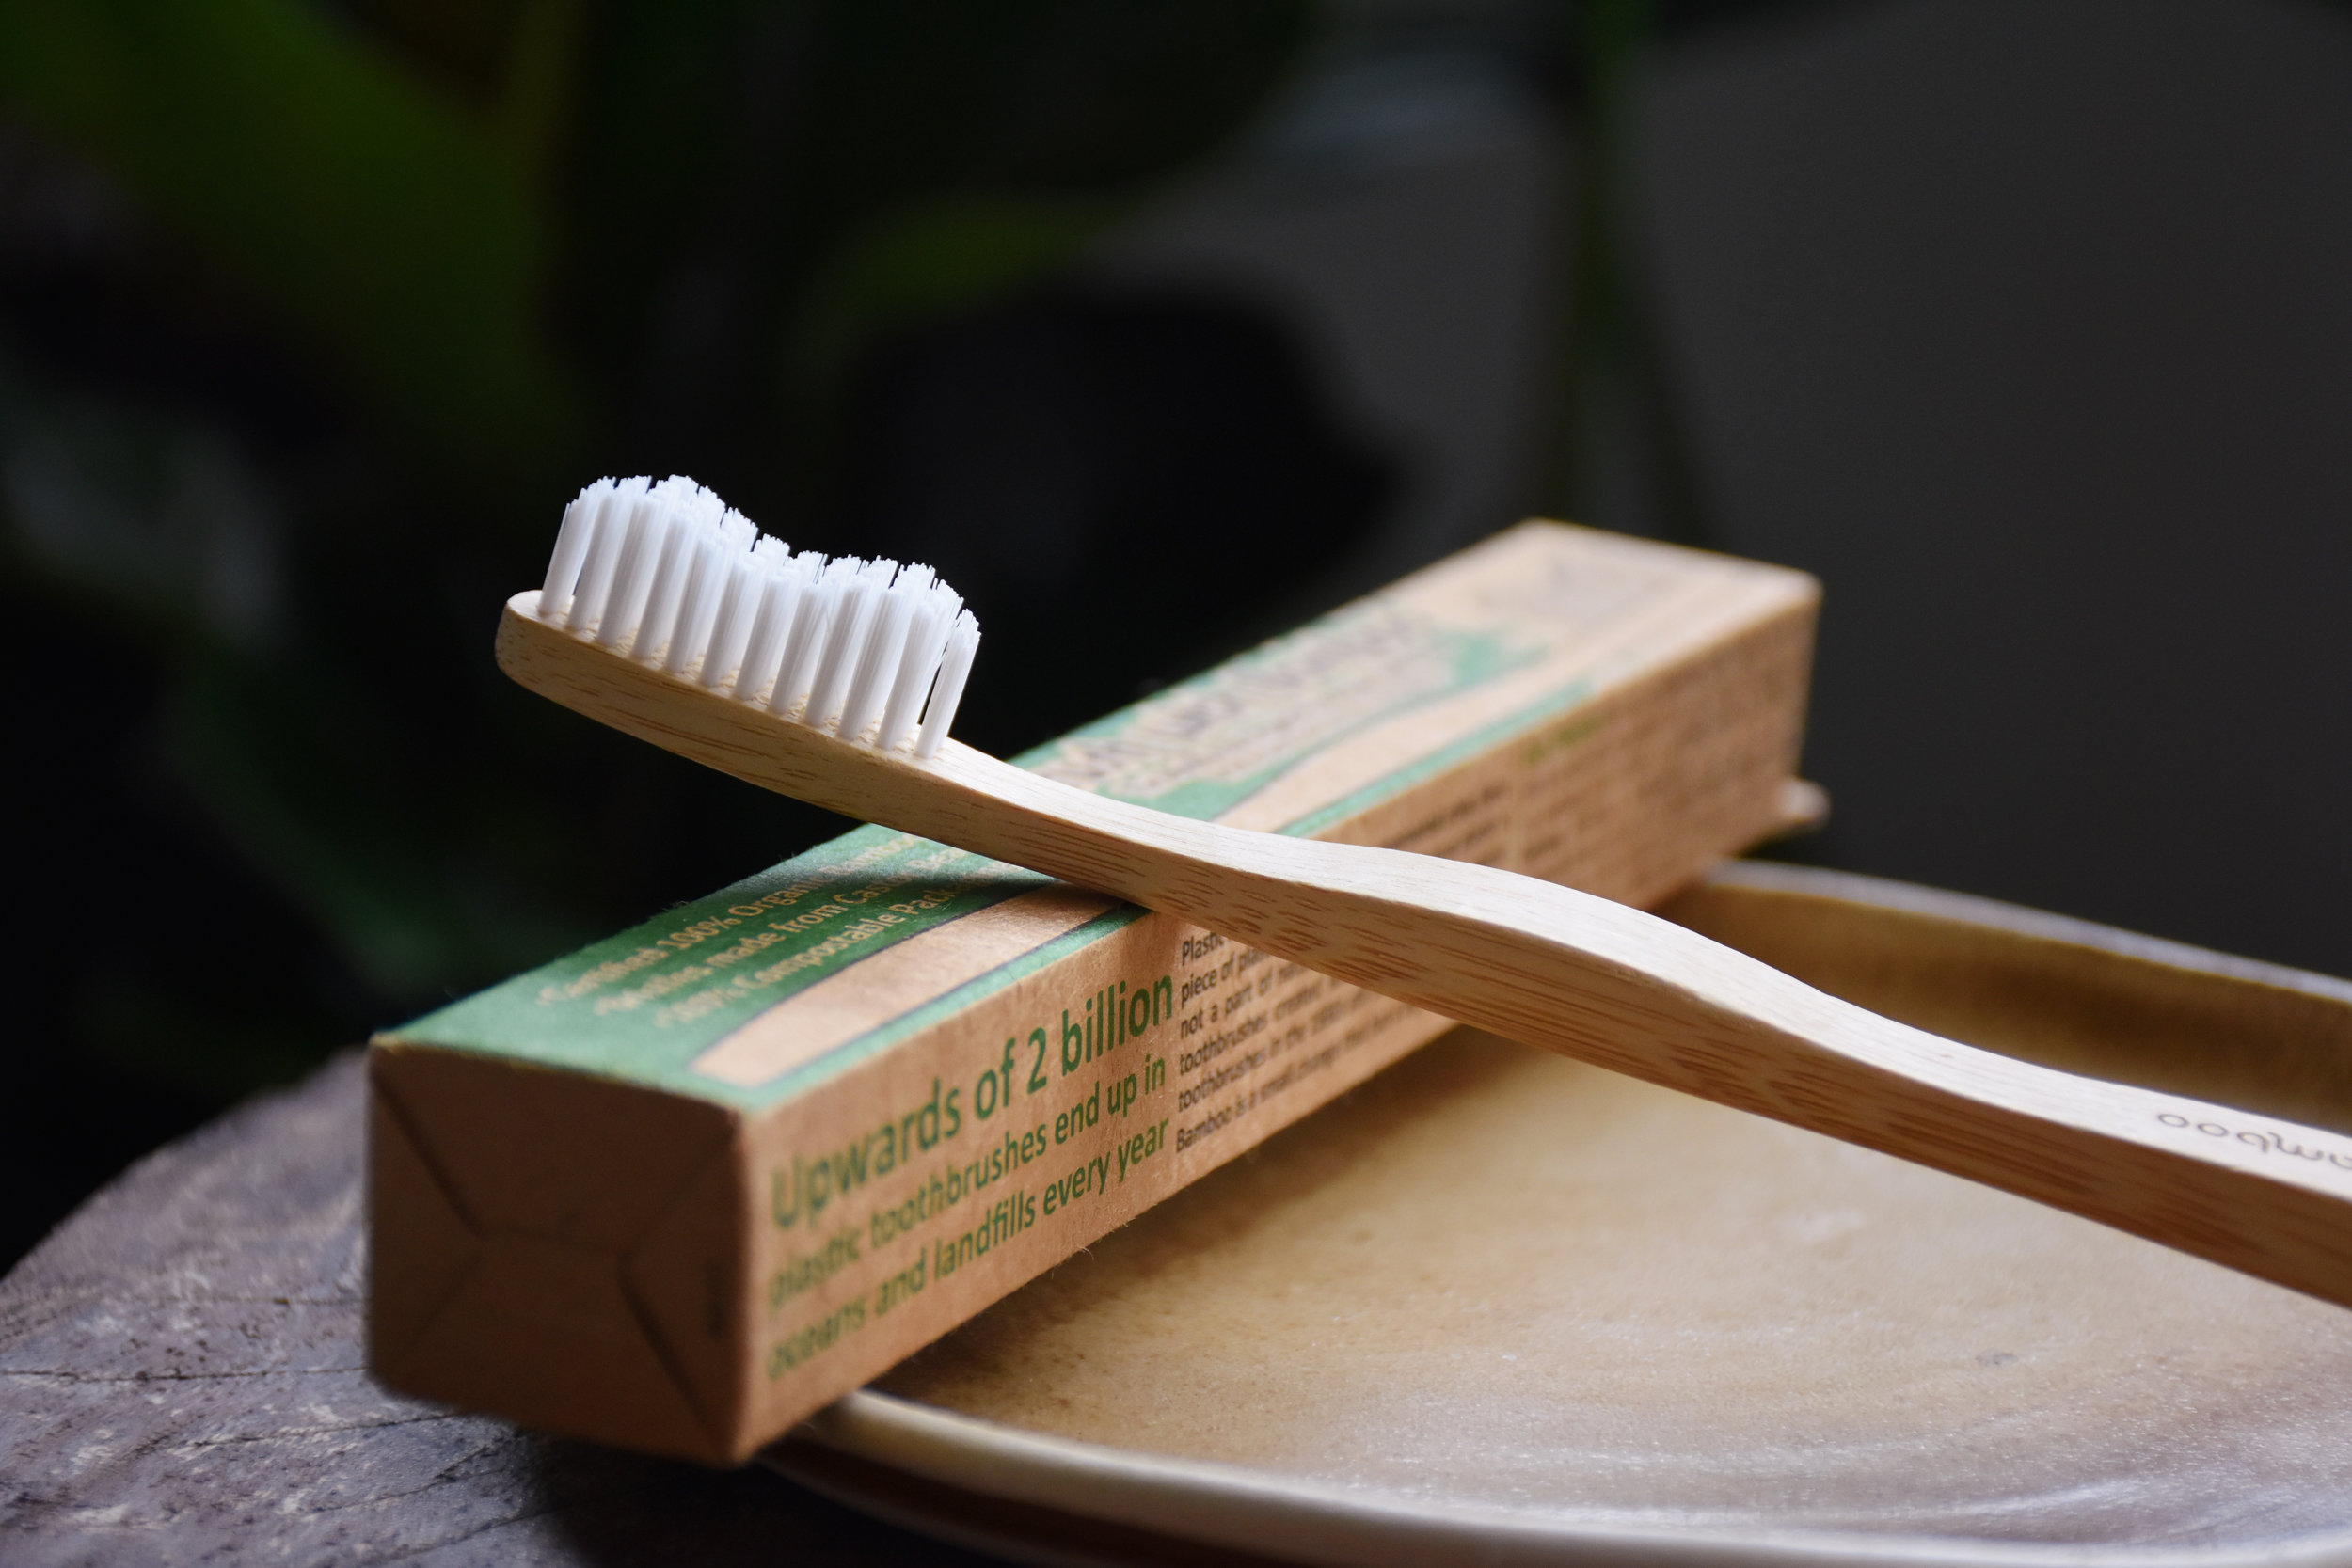 Plant-based toothbrushes